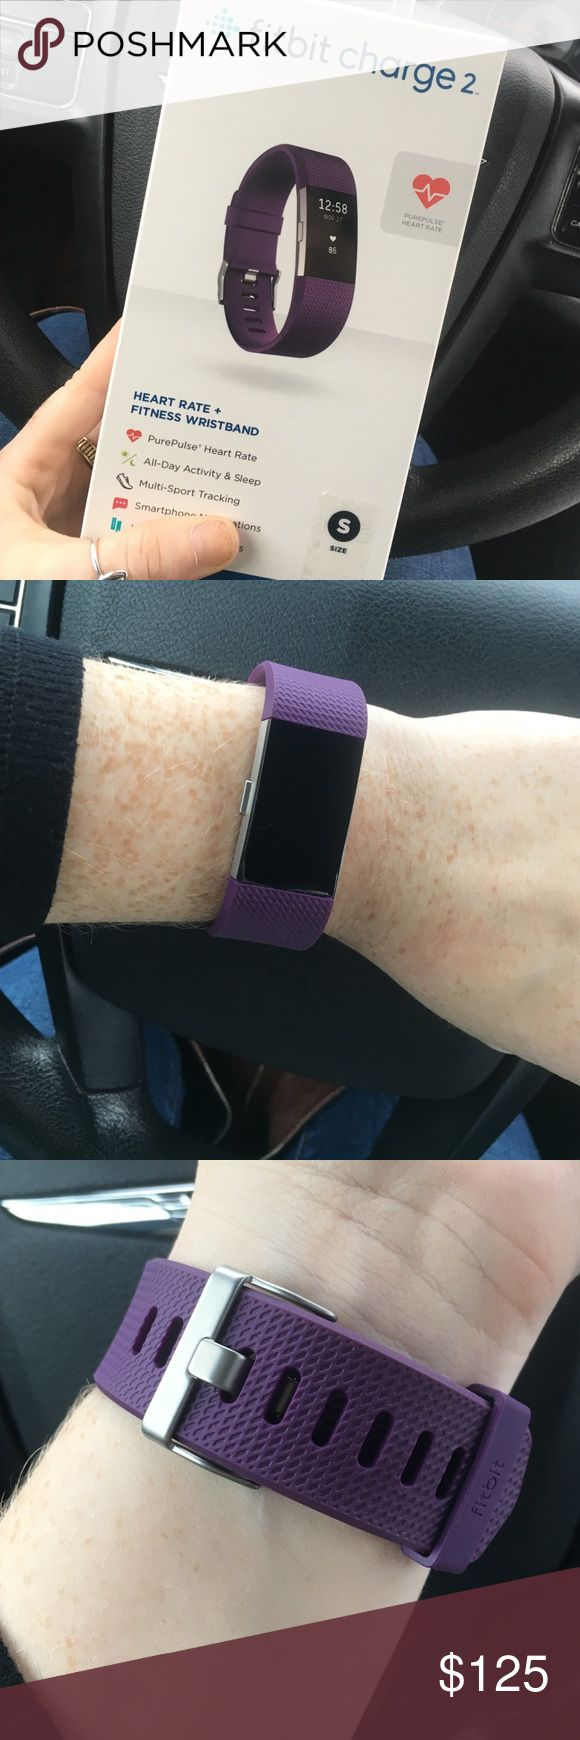 LIKE NEW Fitbit Charge 2 Worn for a half hour and decided I didn't want it. Lost receipt so I can't return it. Like new. Size small purple Fitbit charge 2 with original box and charger. NO TRADES fitbit Accessories Watches